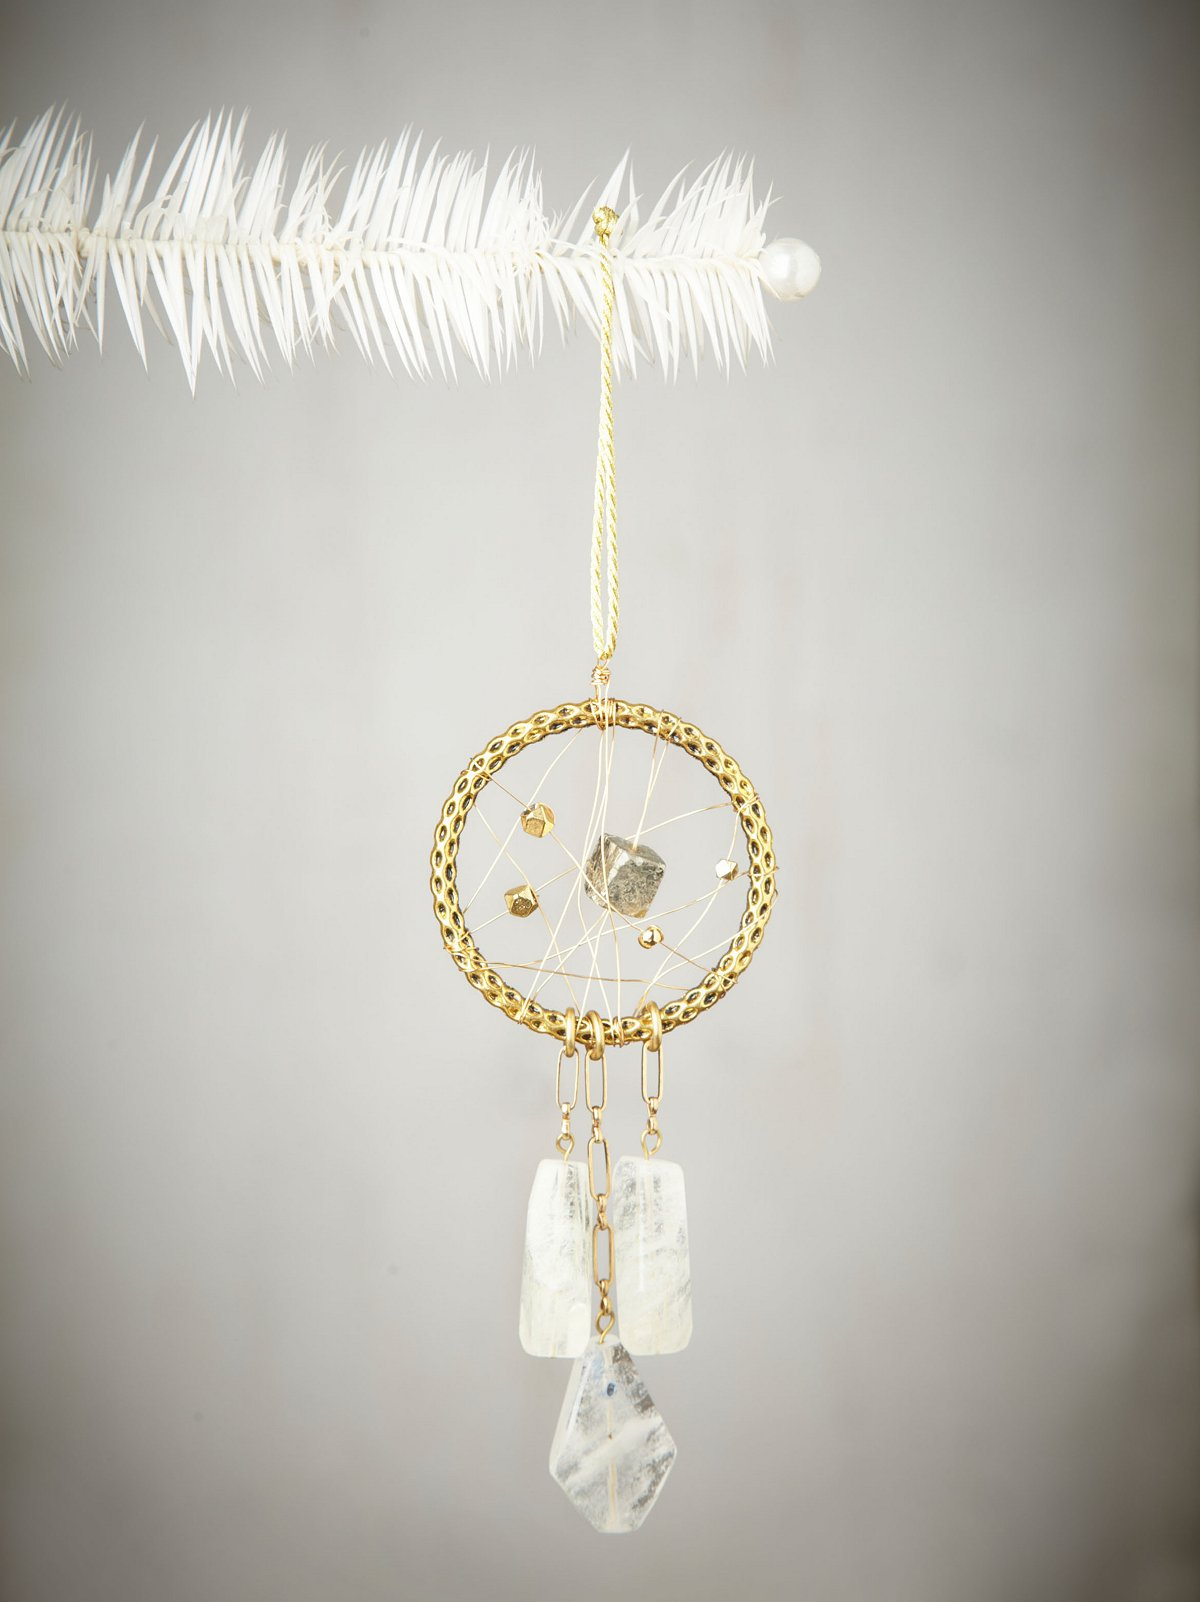 Aiyanna Dream Catcher Ornament